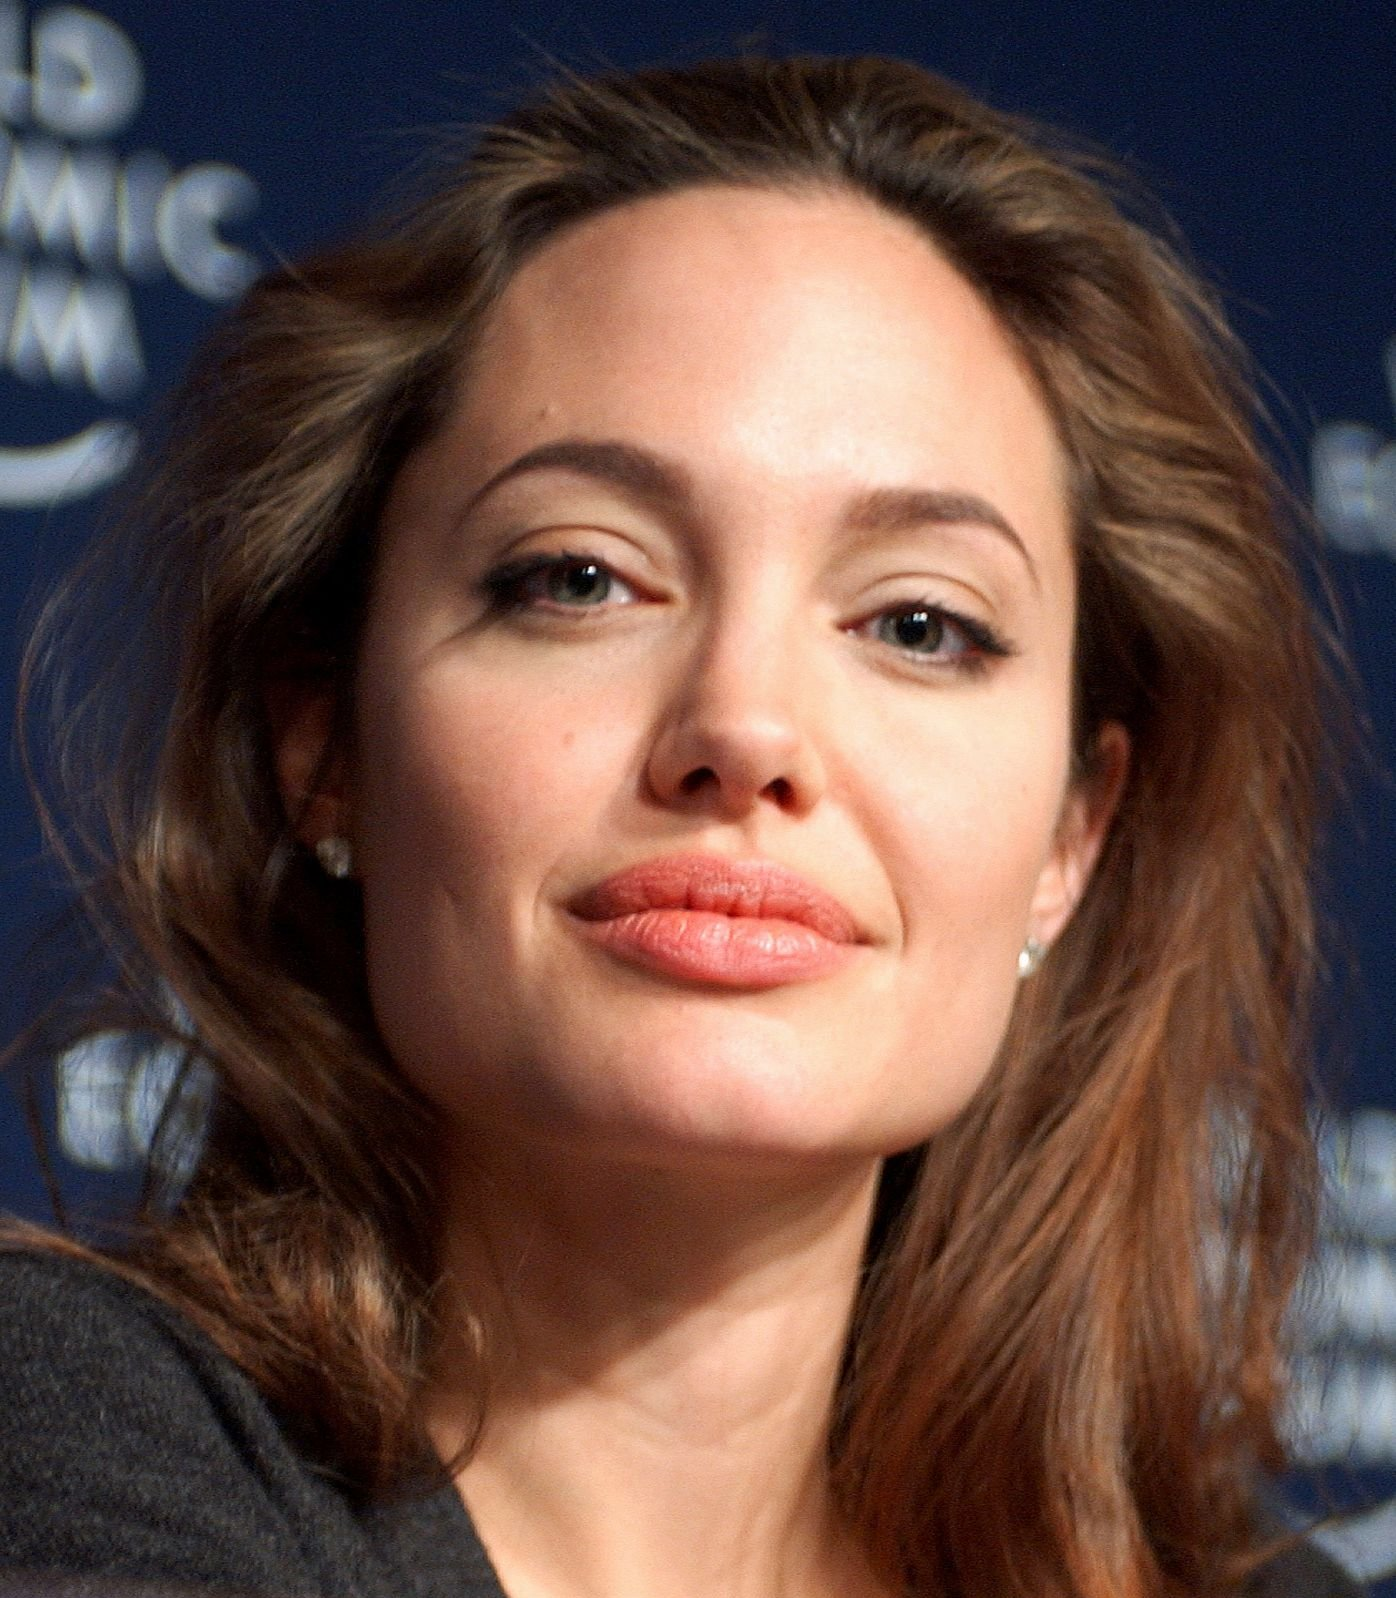 File:Angelina Jolie at Davos crop.jpg - Wikipedia